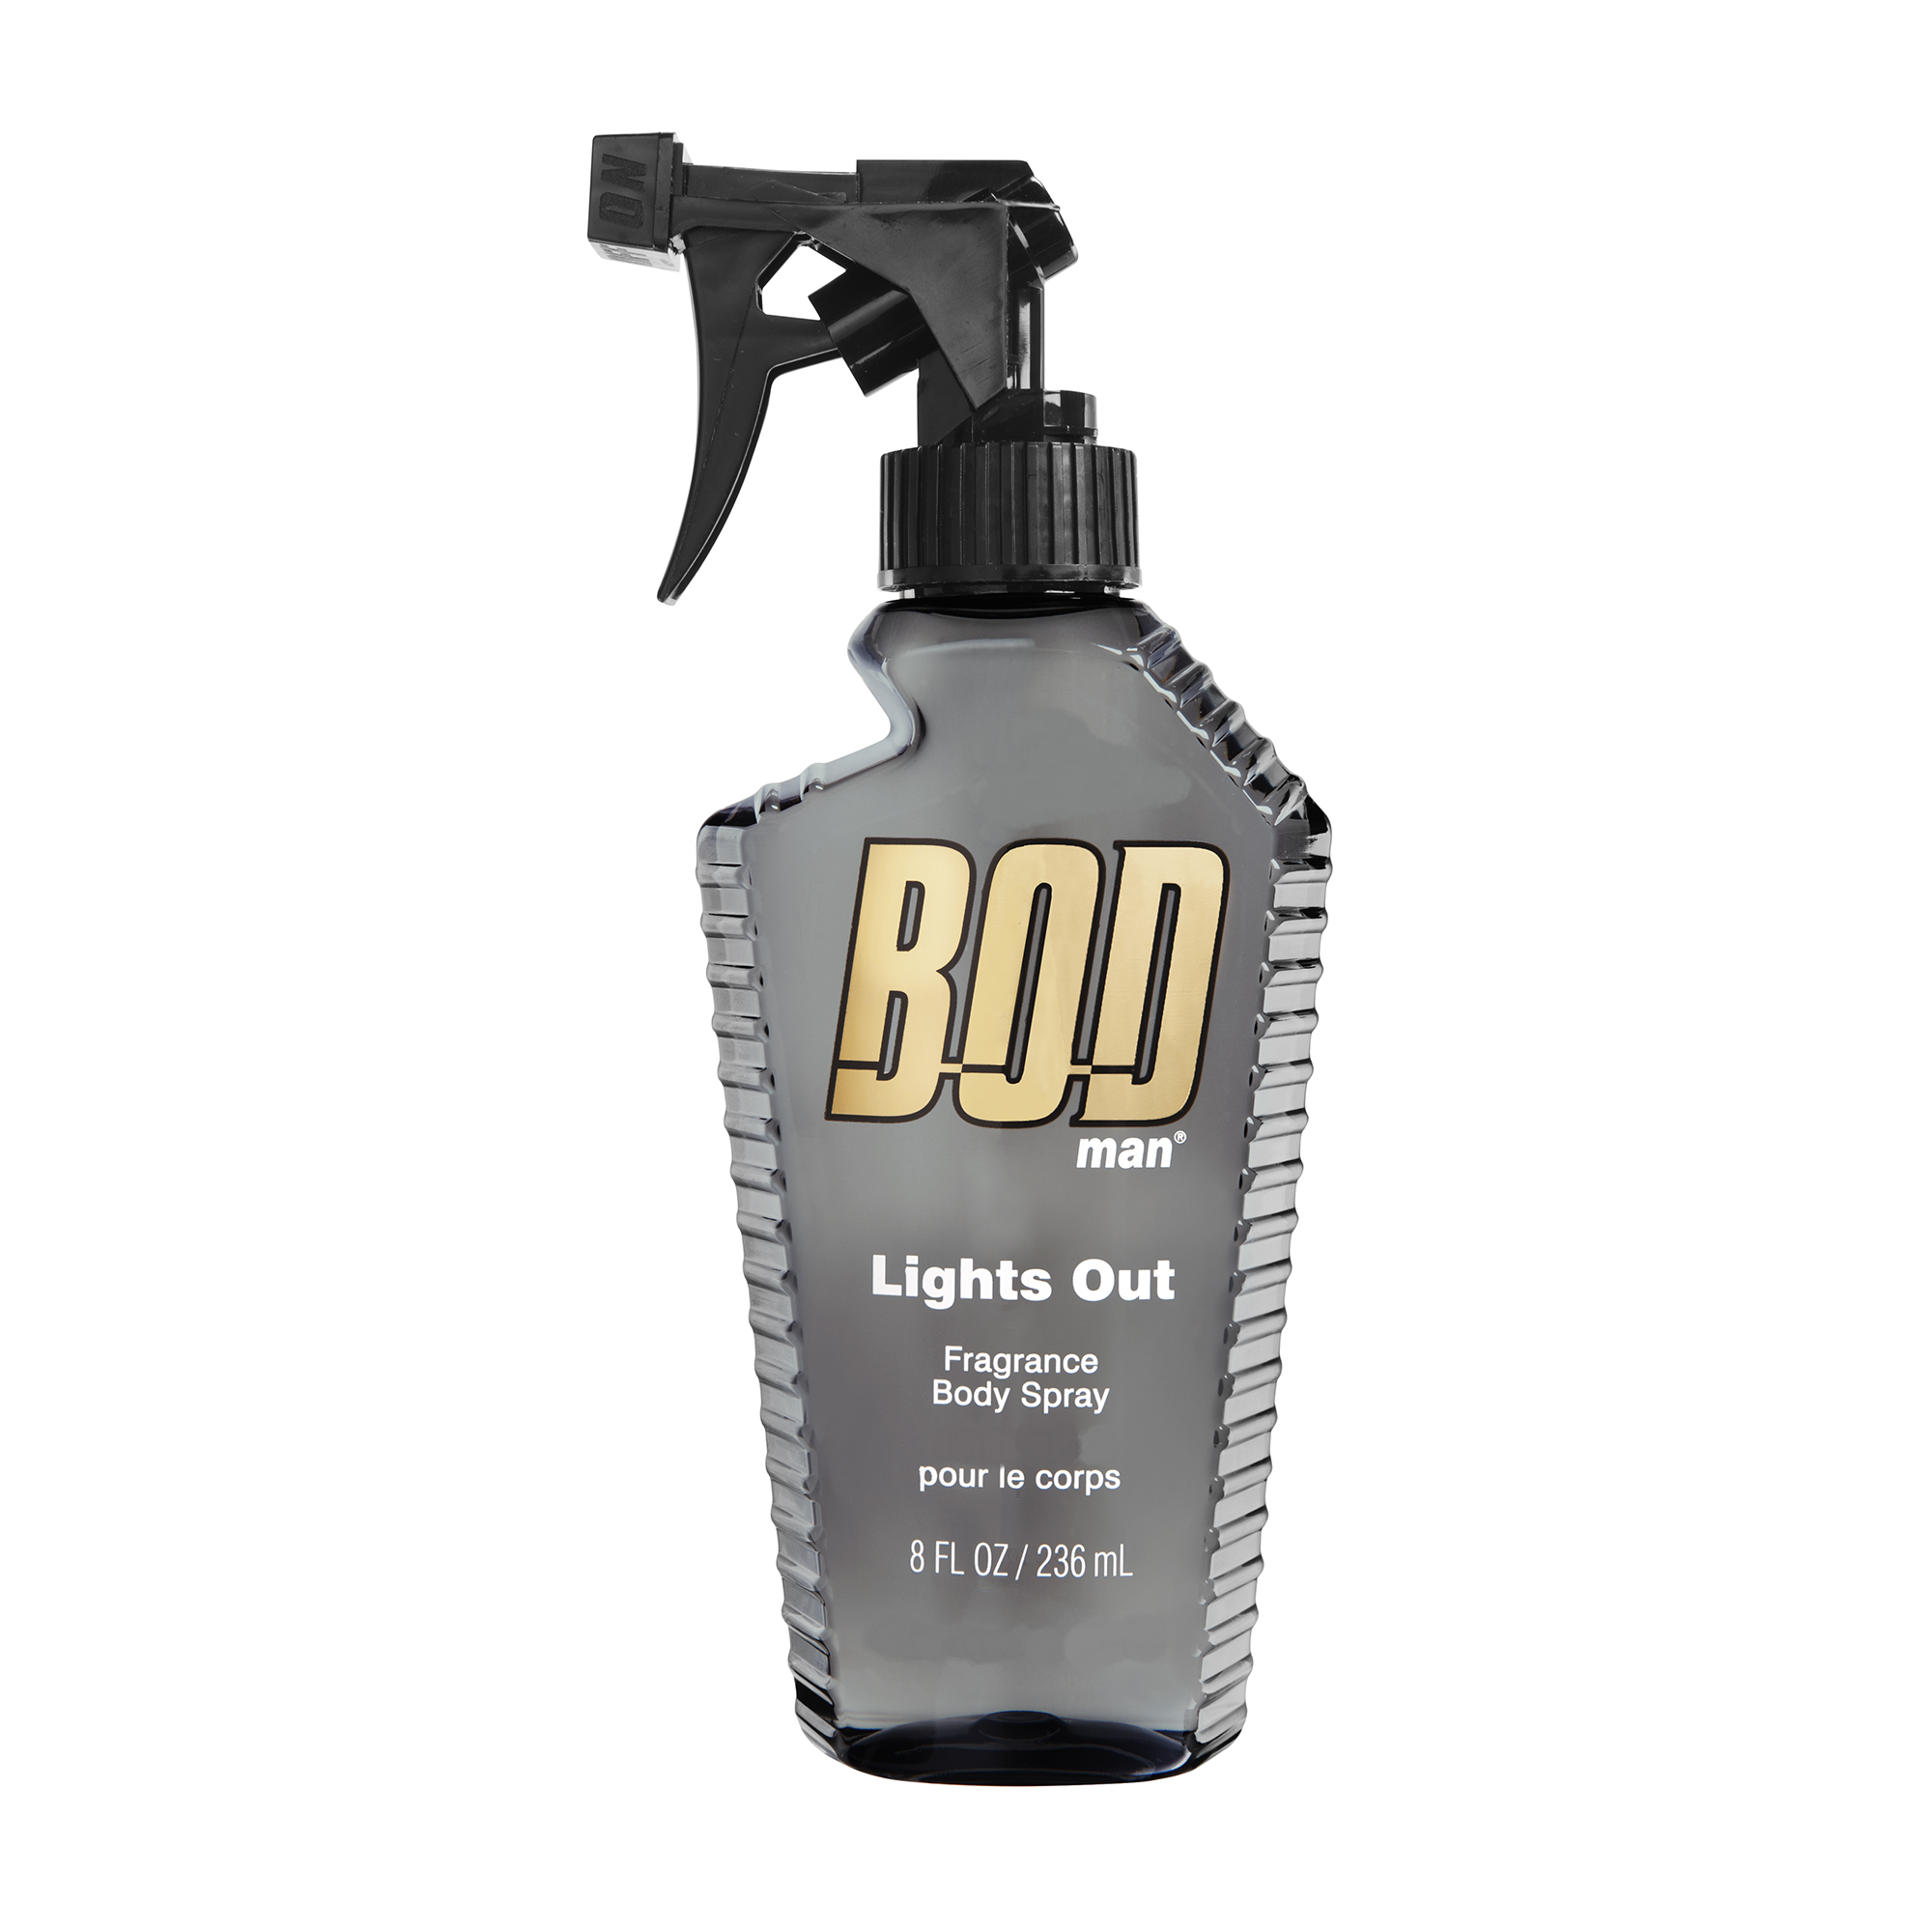 BOD LIGHTS OUT 8 OZ FRAGRANCE BODY SPRAY